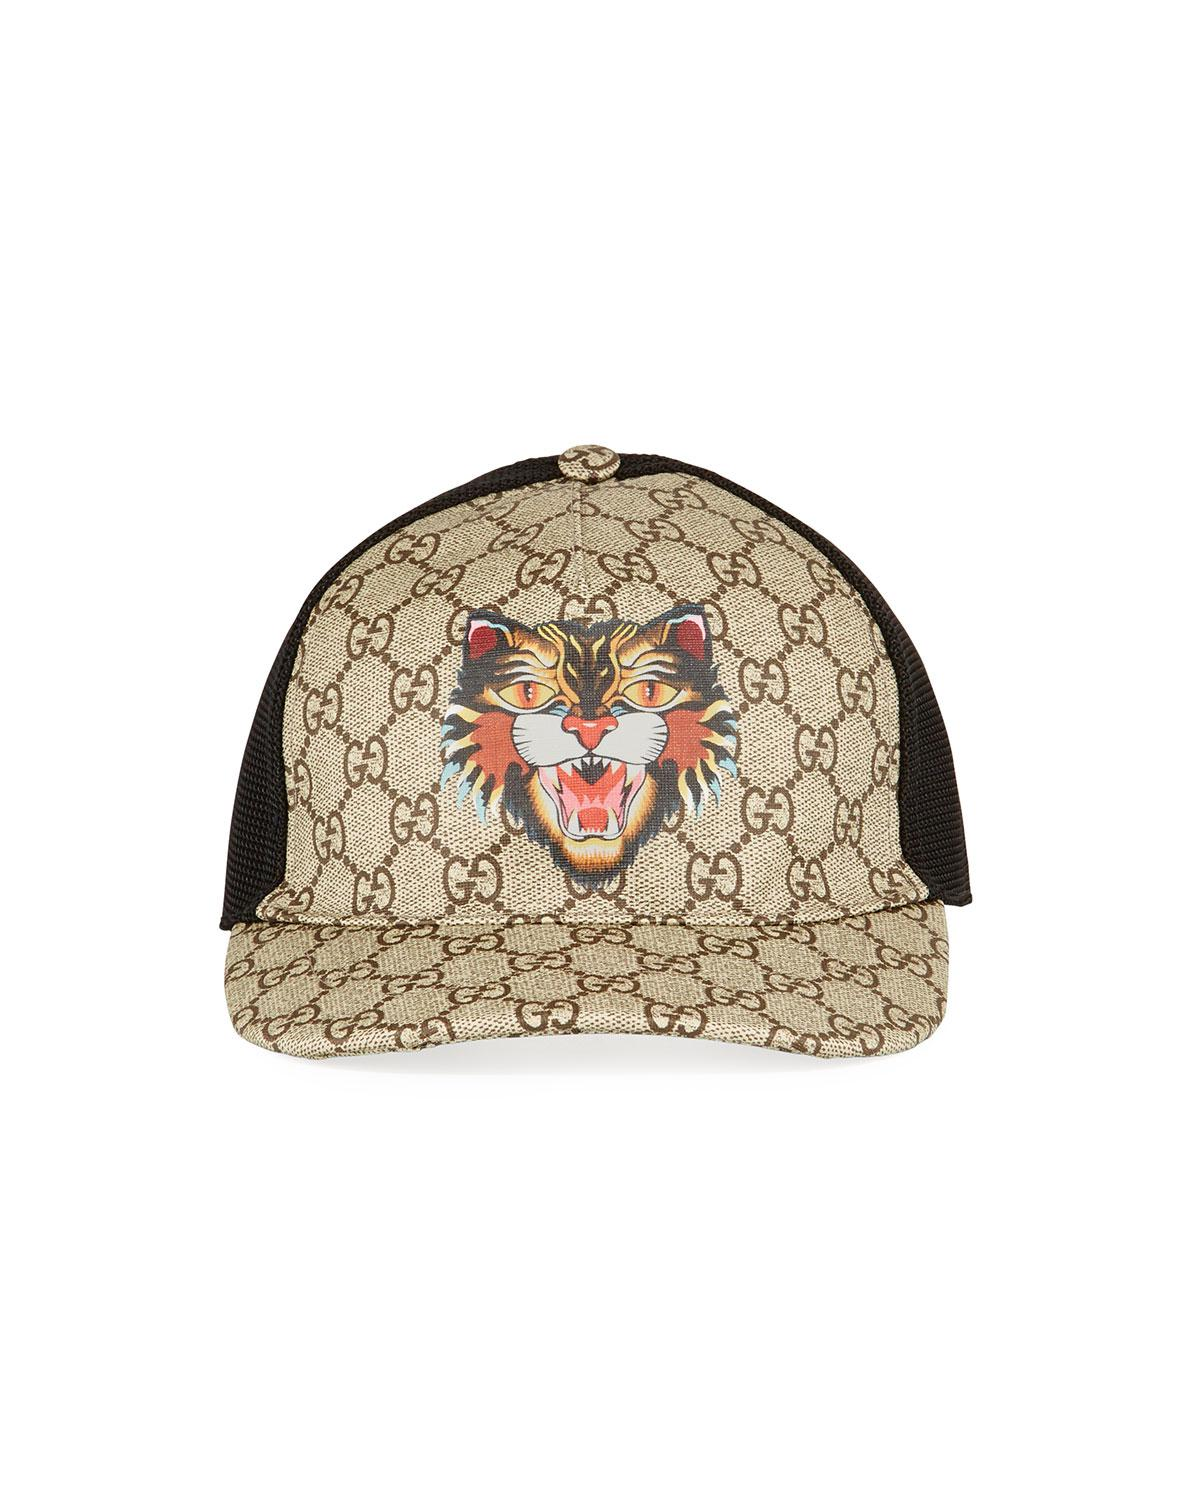 ec124dc586c Lyst - Gucci Angry Cat Gg Supreme Baseball Cap in Brown for Men